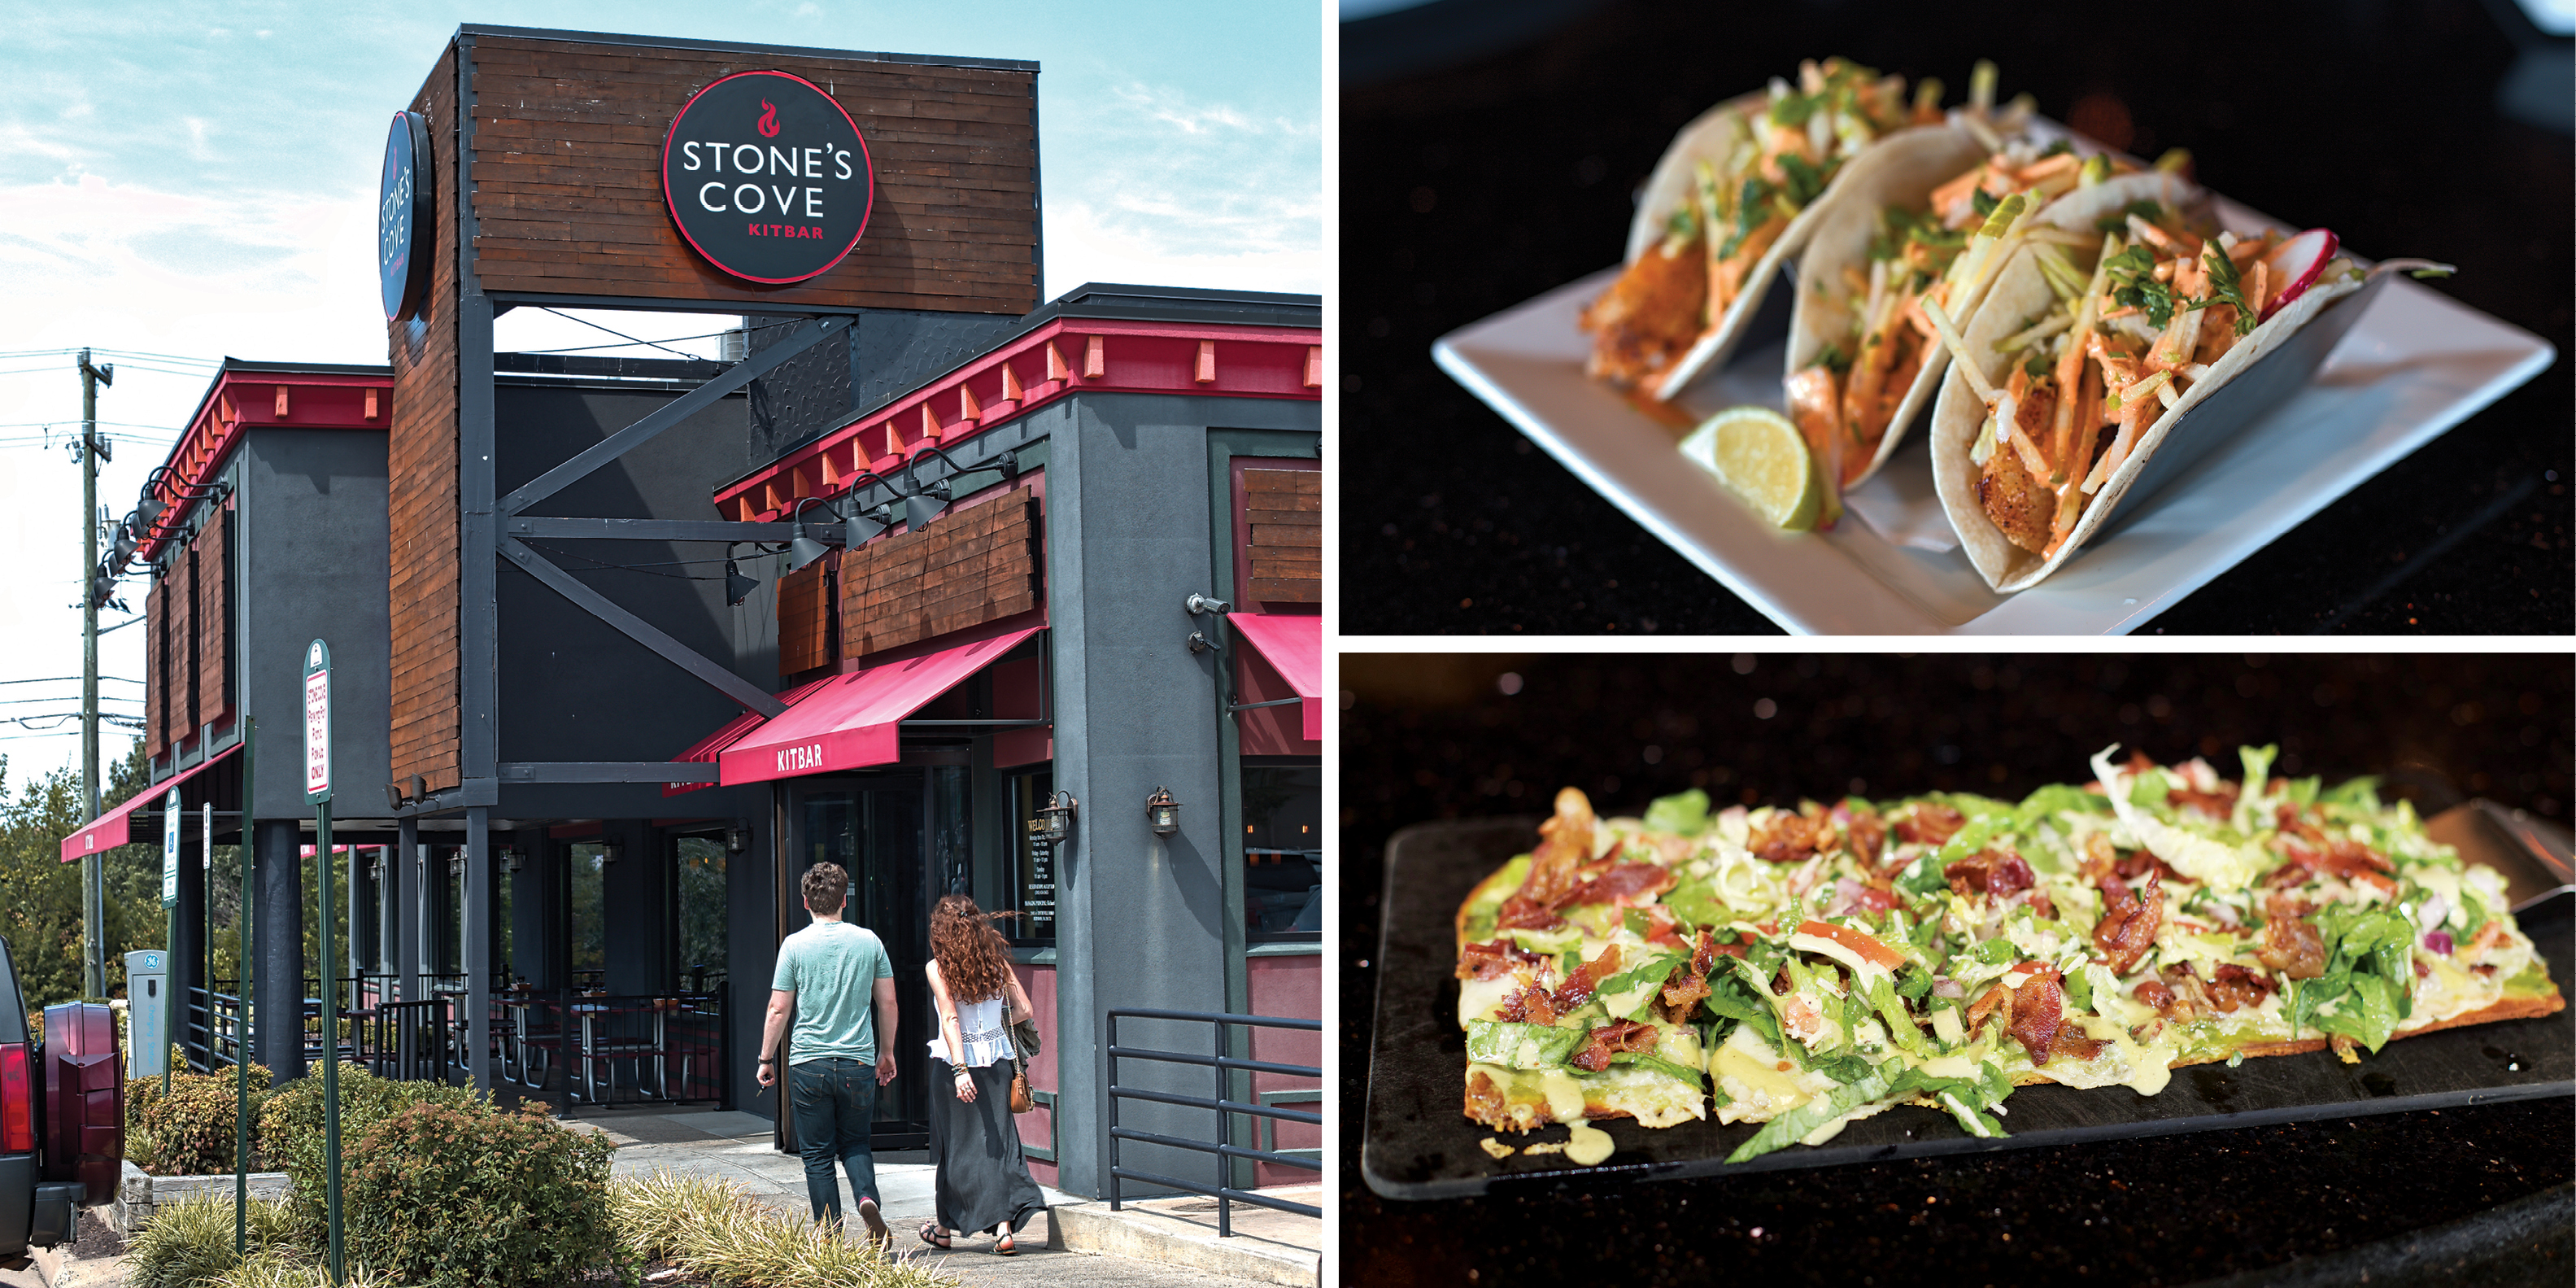 Stone's Cove Kitbar with tacos and flatbread